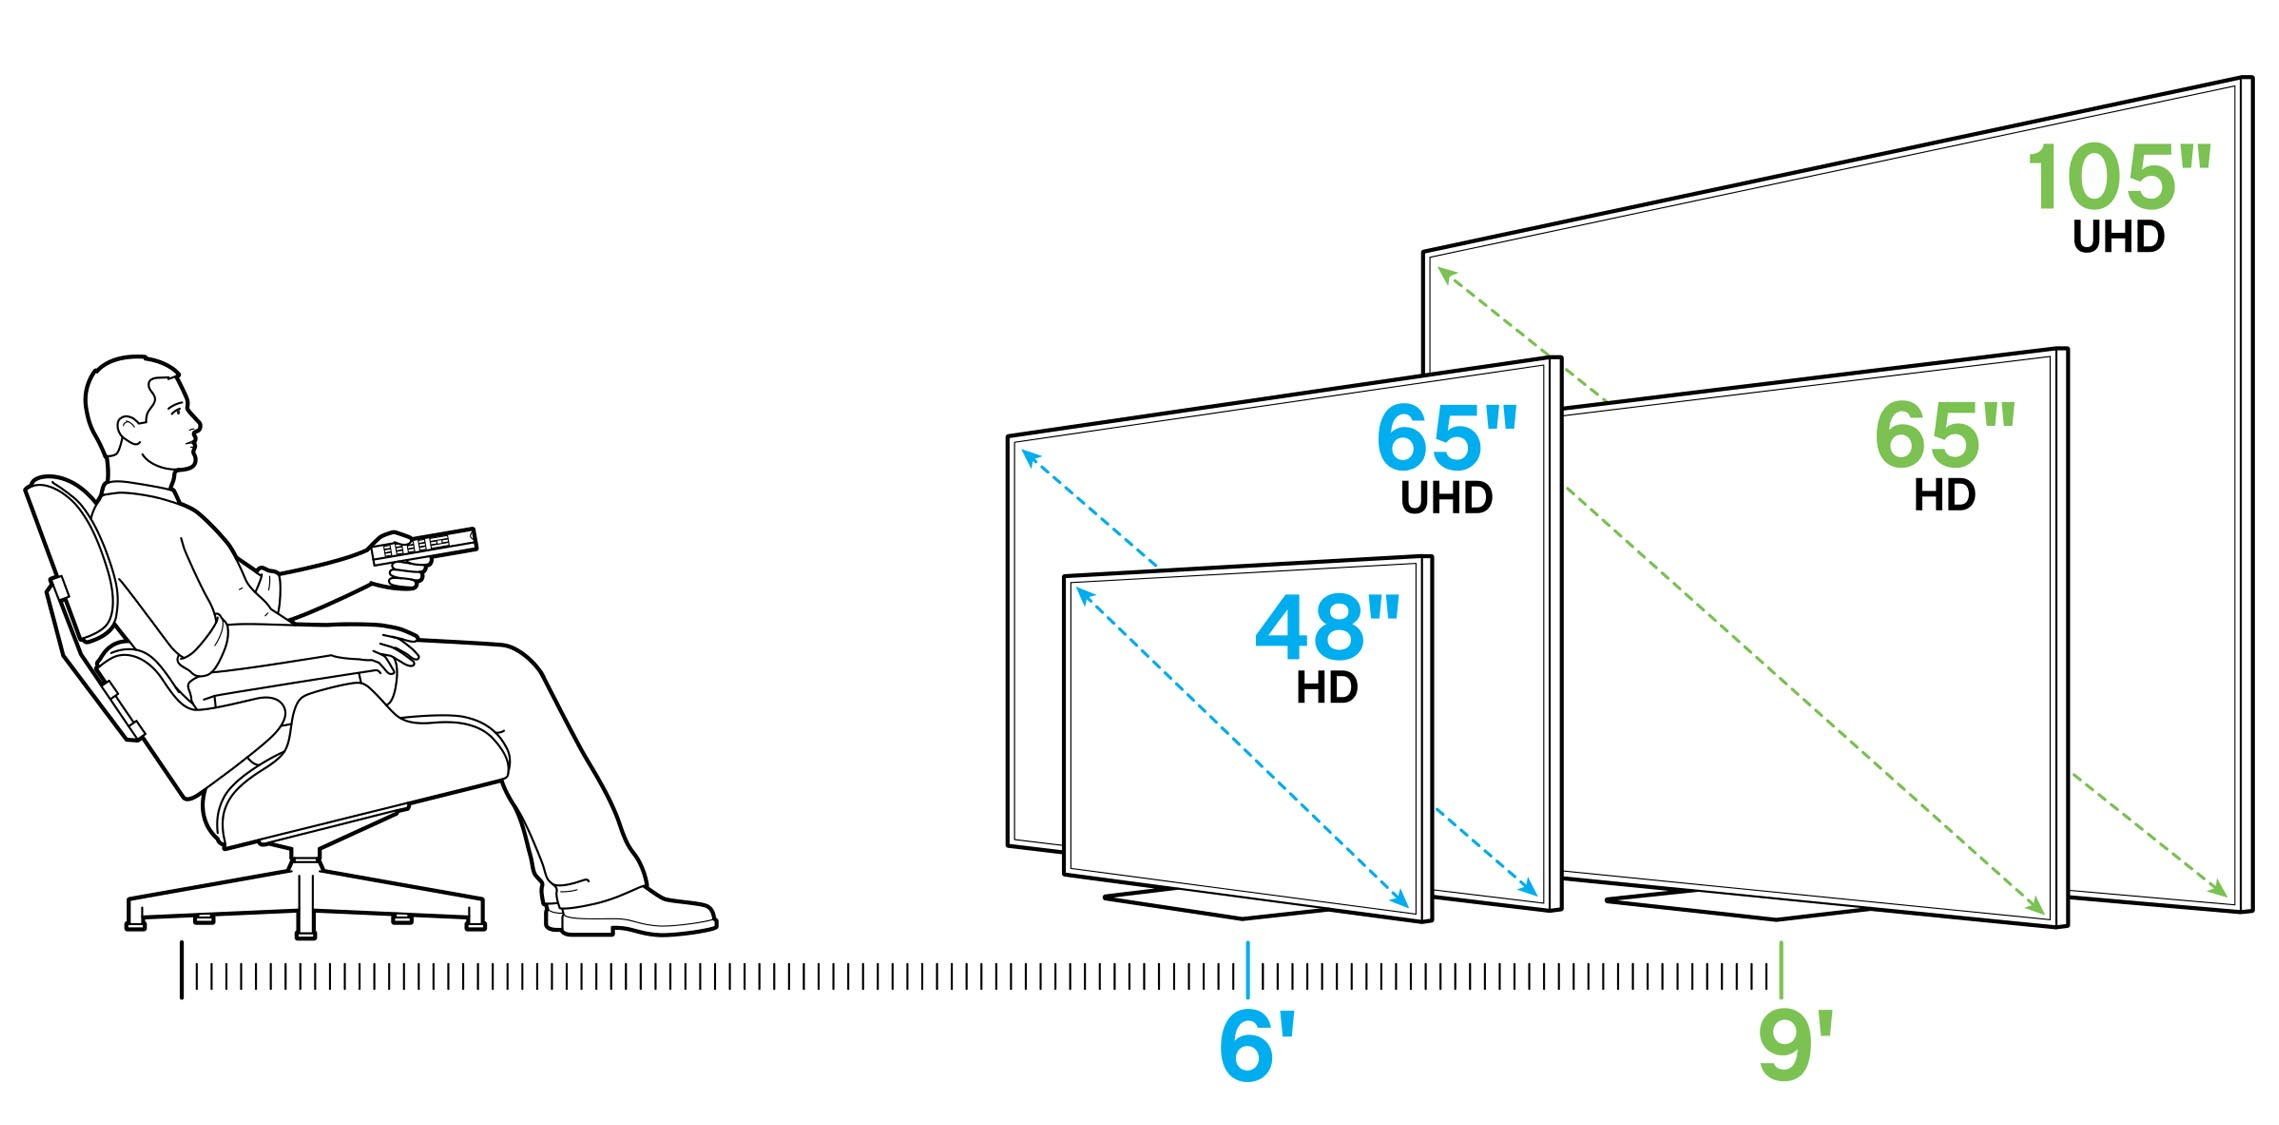 Illustration of 1080p and UHD TV size based on 6- and 9-foot viewing distances.